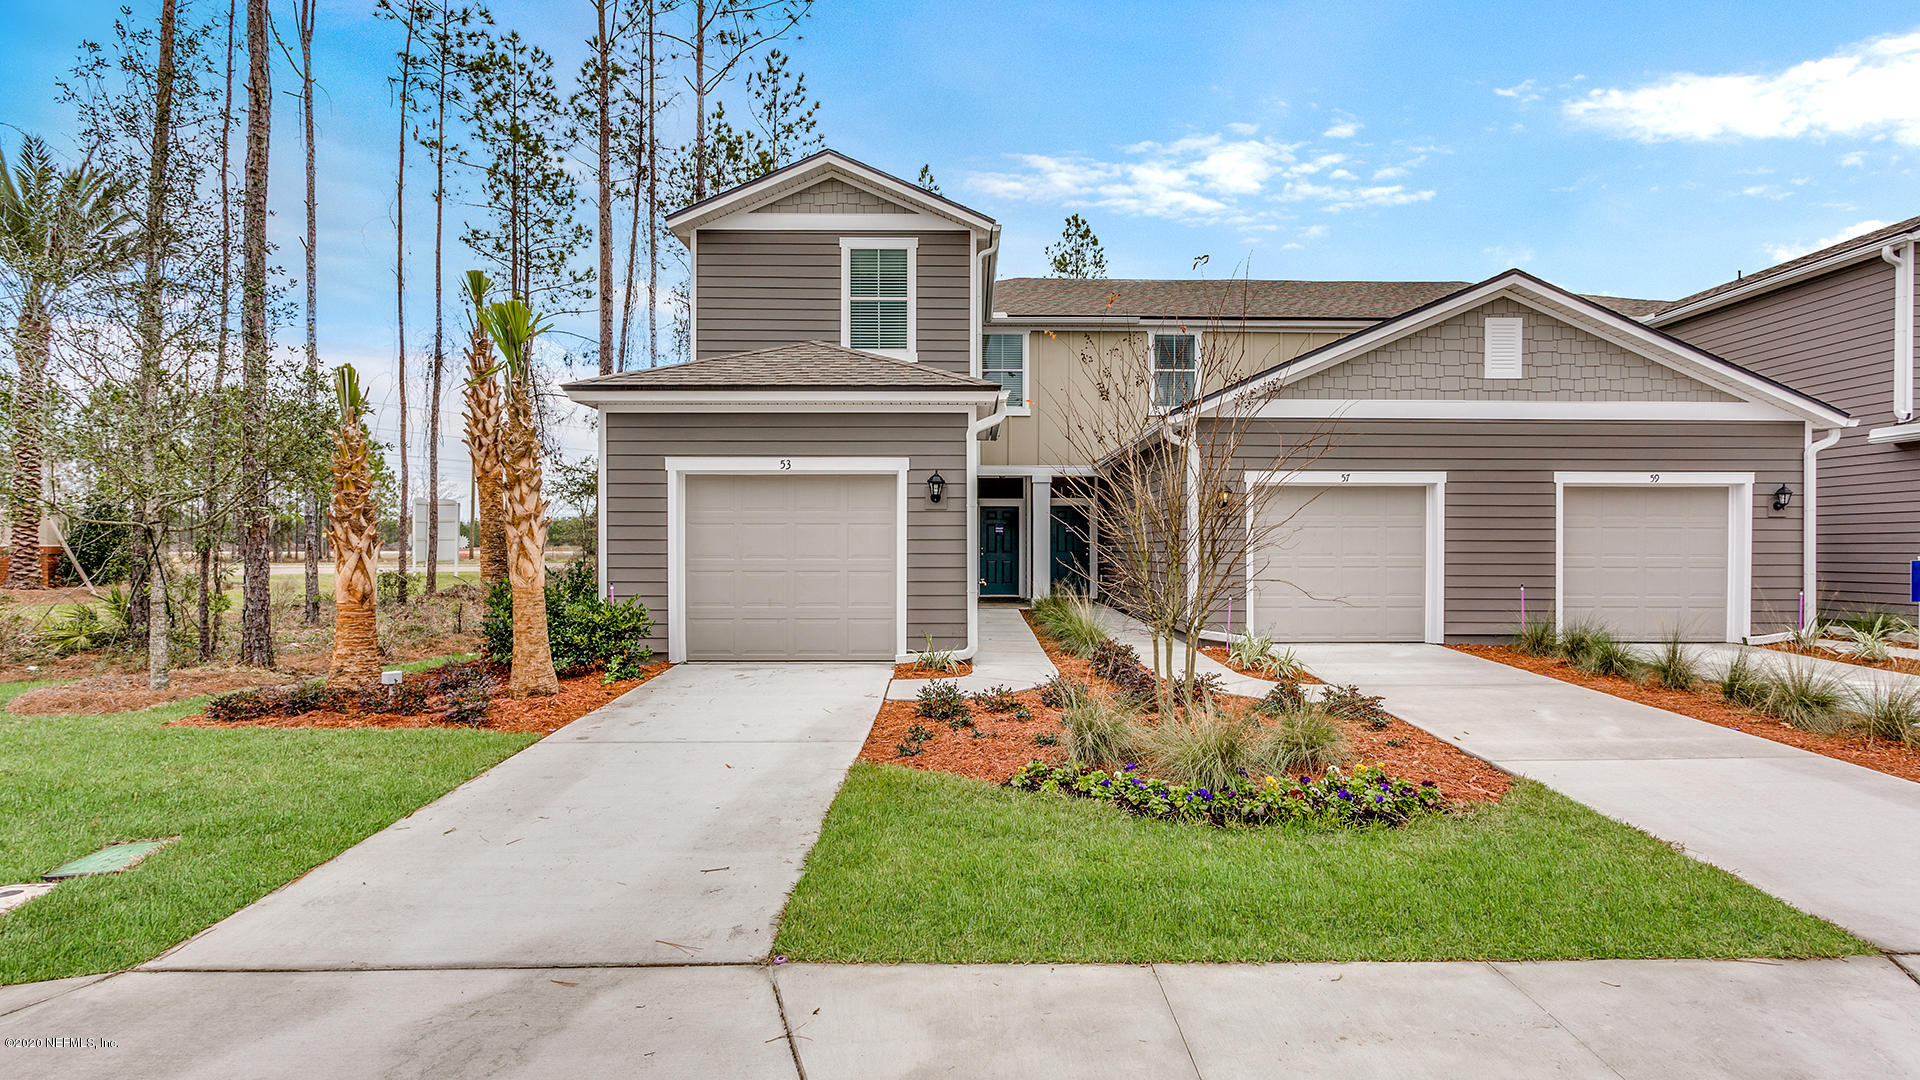 53 SCOTCH PEBBLE, ST JOHNS, FLORIDA 32259, 3 Bedrooms Bedrooms, ,2 BathroomsBathrooms,Residential,For sale,SCOTCH PEBBLE,1080992